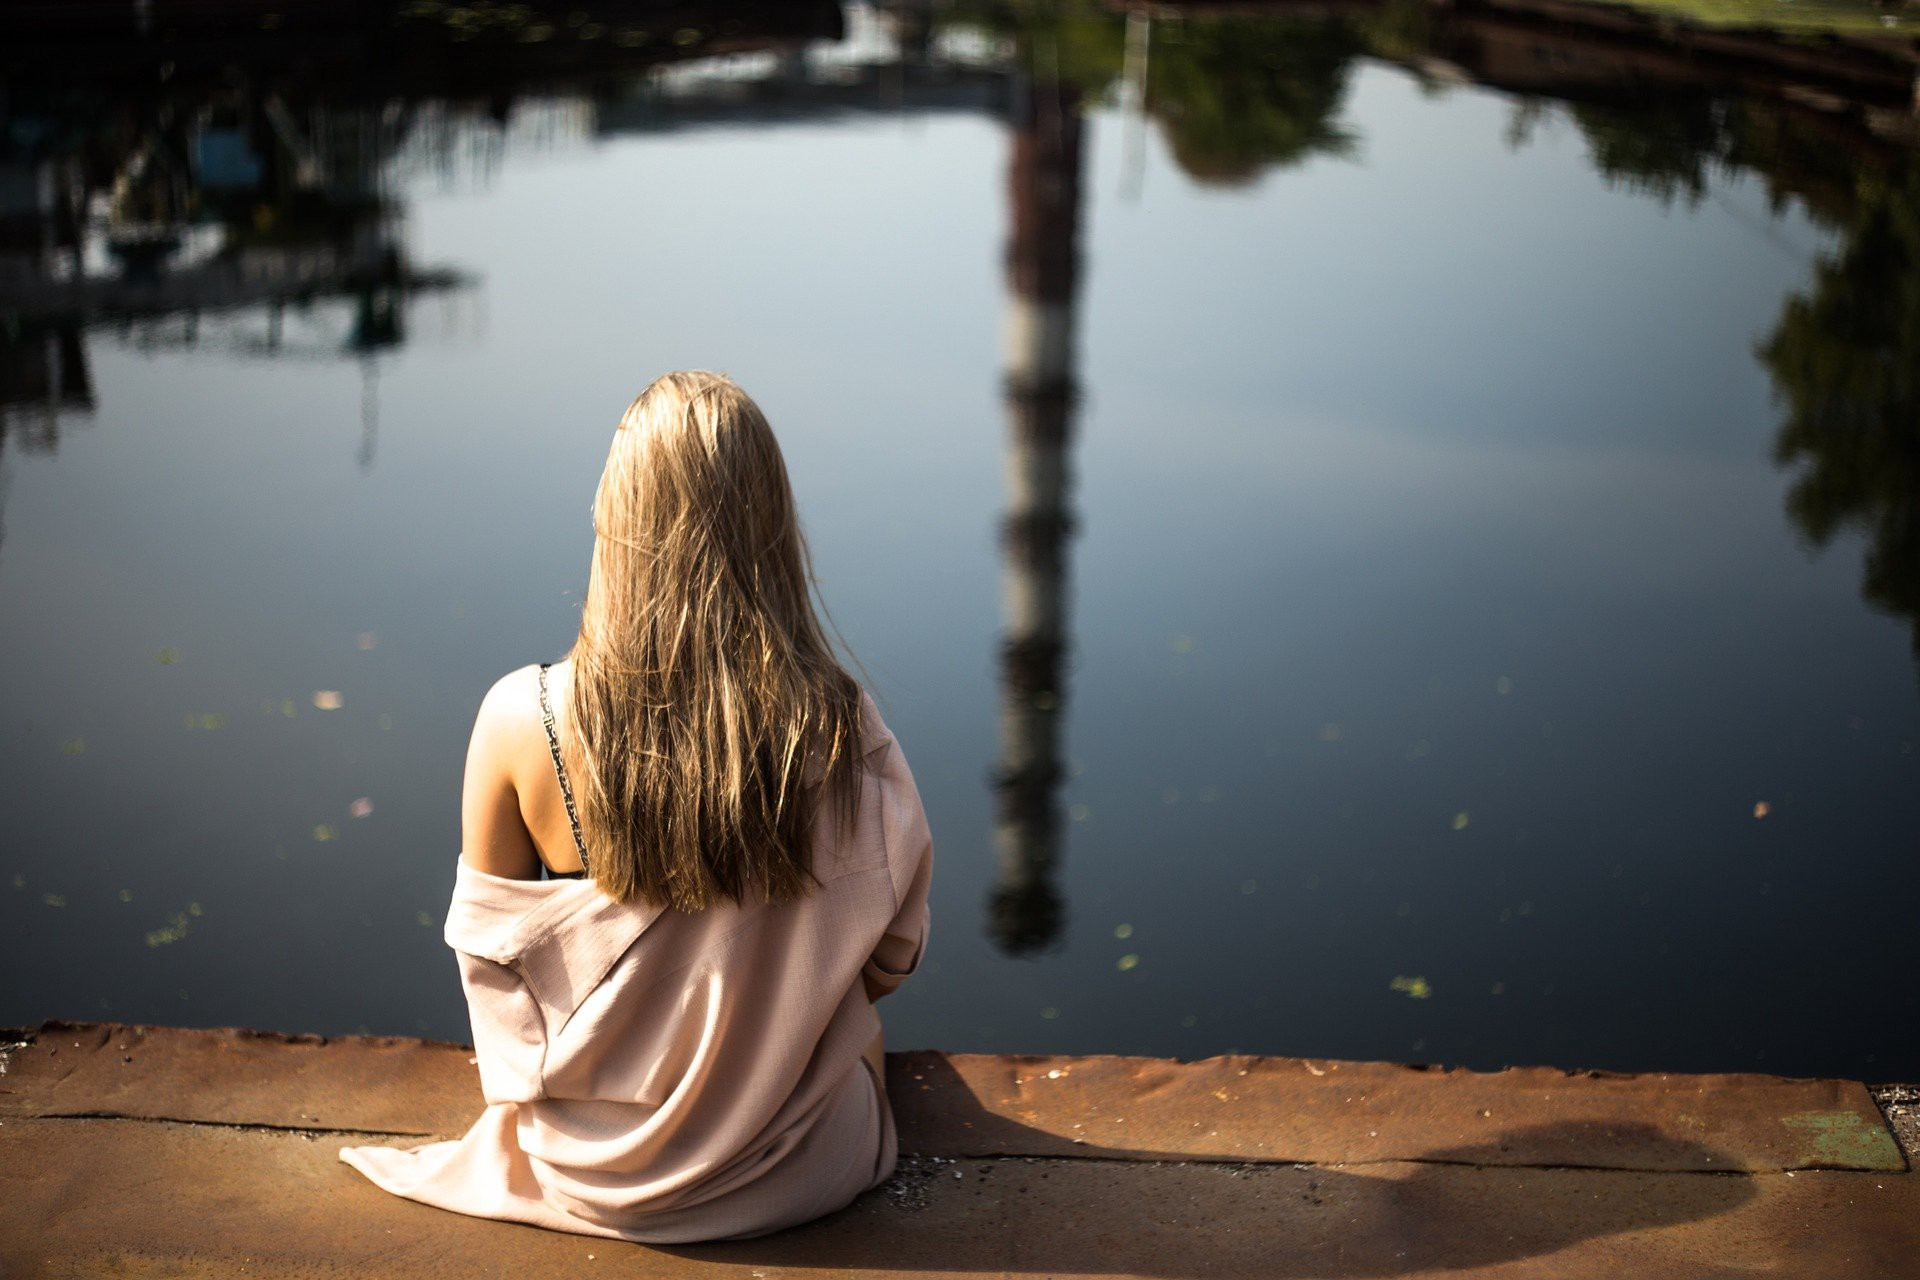 Blond Girl sitting on the side of a lake or pond, alone